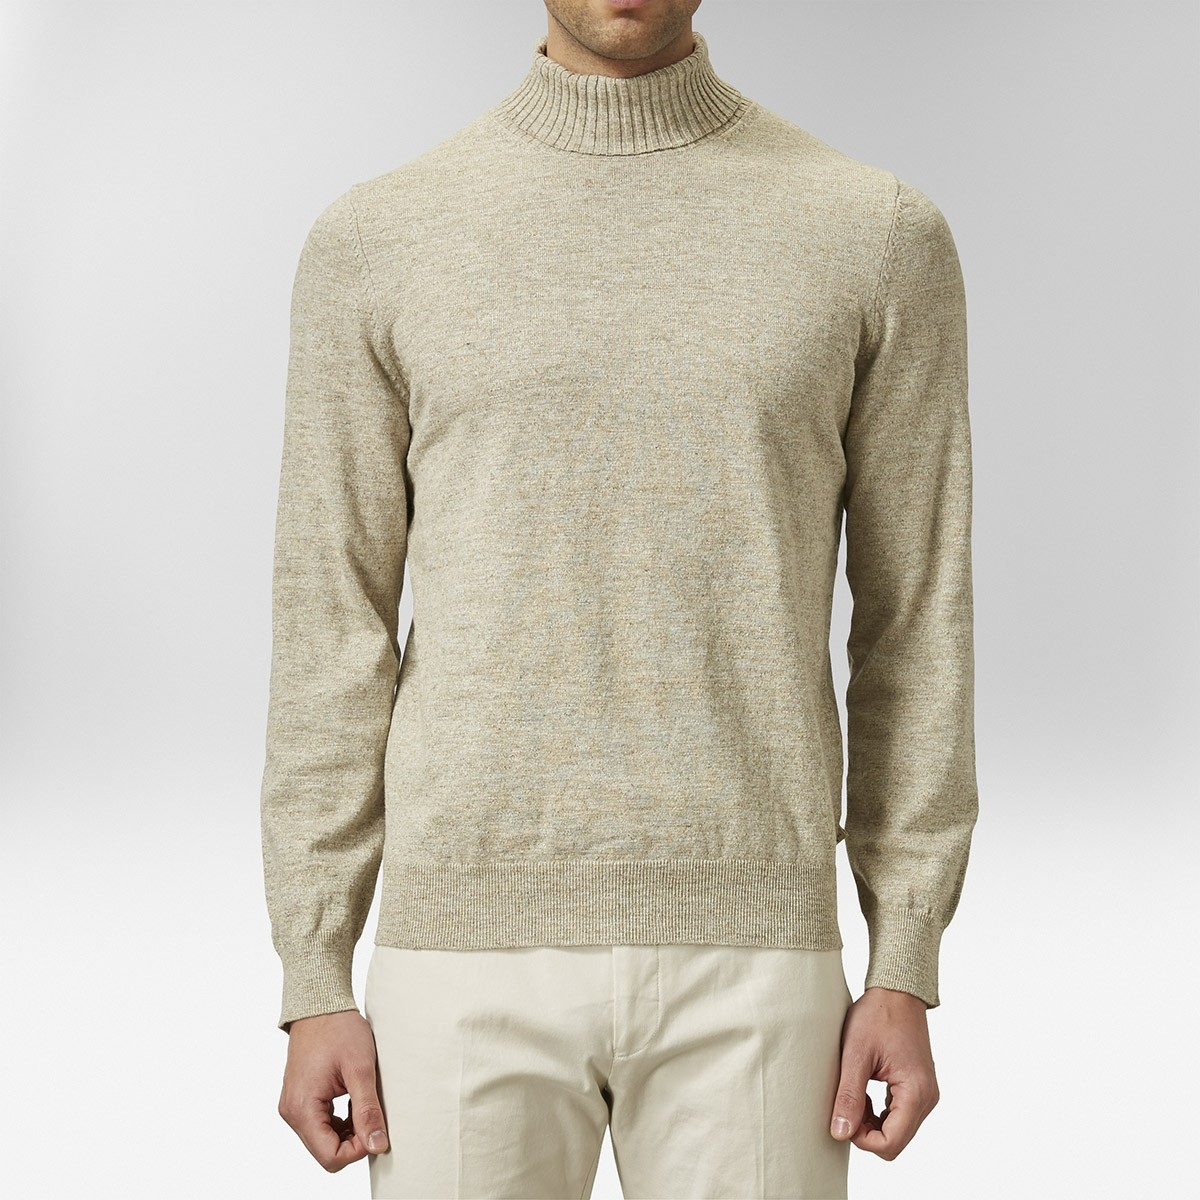 Kean Beige Pooloneule   The Tailoring Club   Brothers.fi